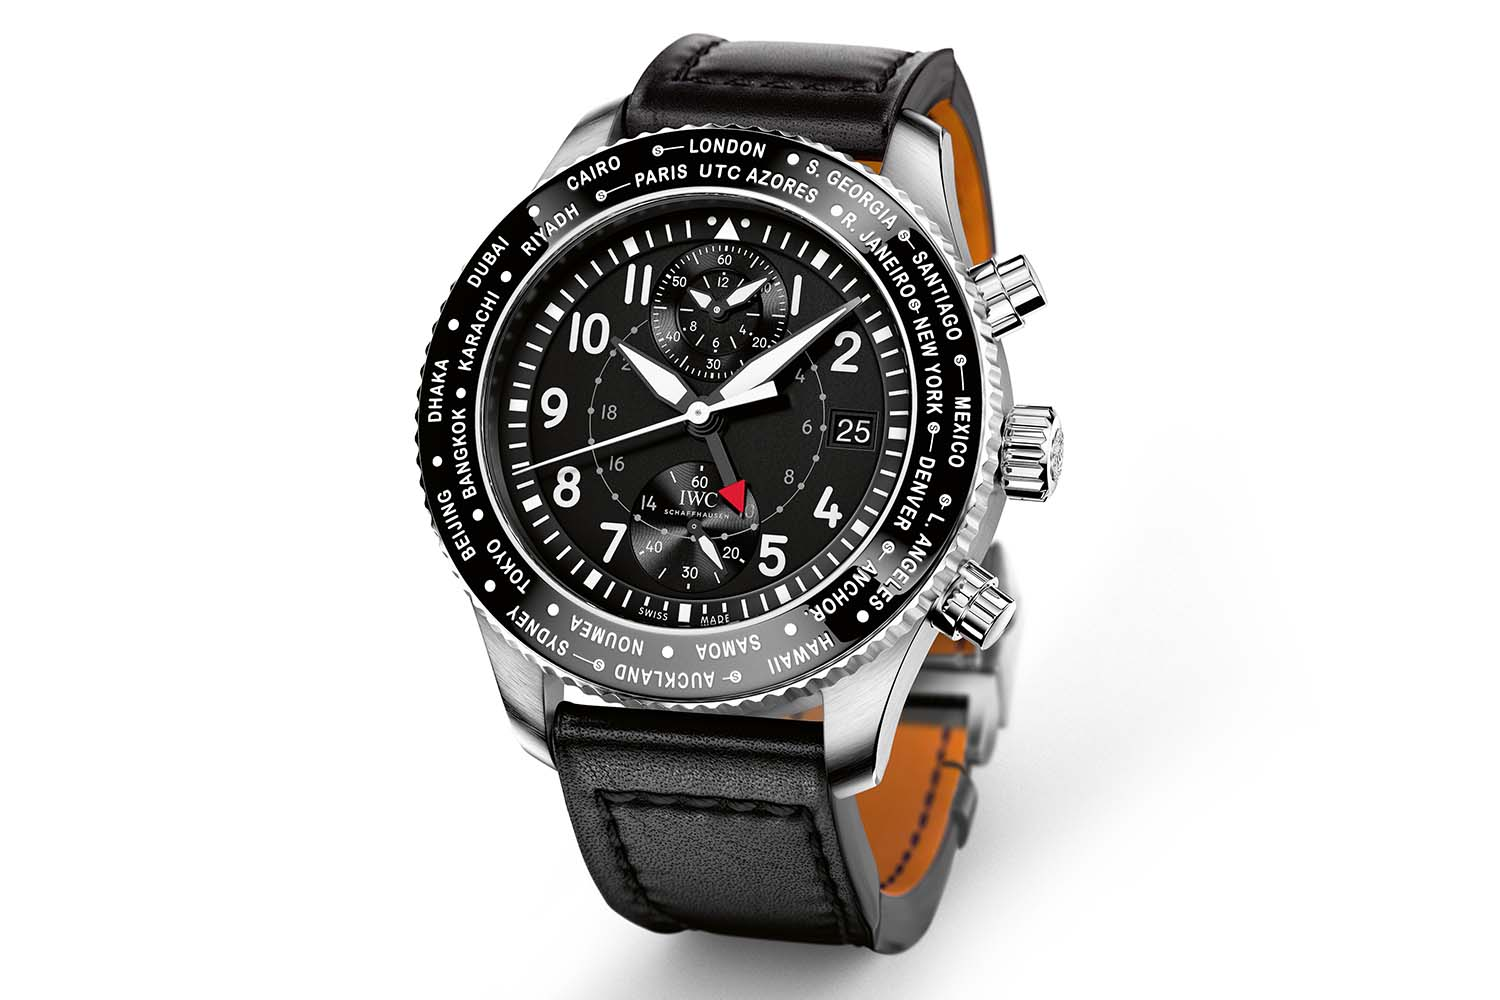 iwc-pilots-watch-timezoner-chronograph-iw395001-sihh-2016-1